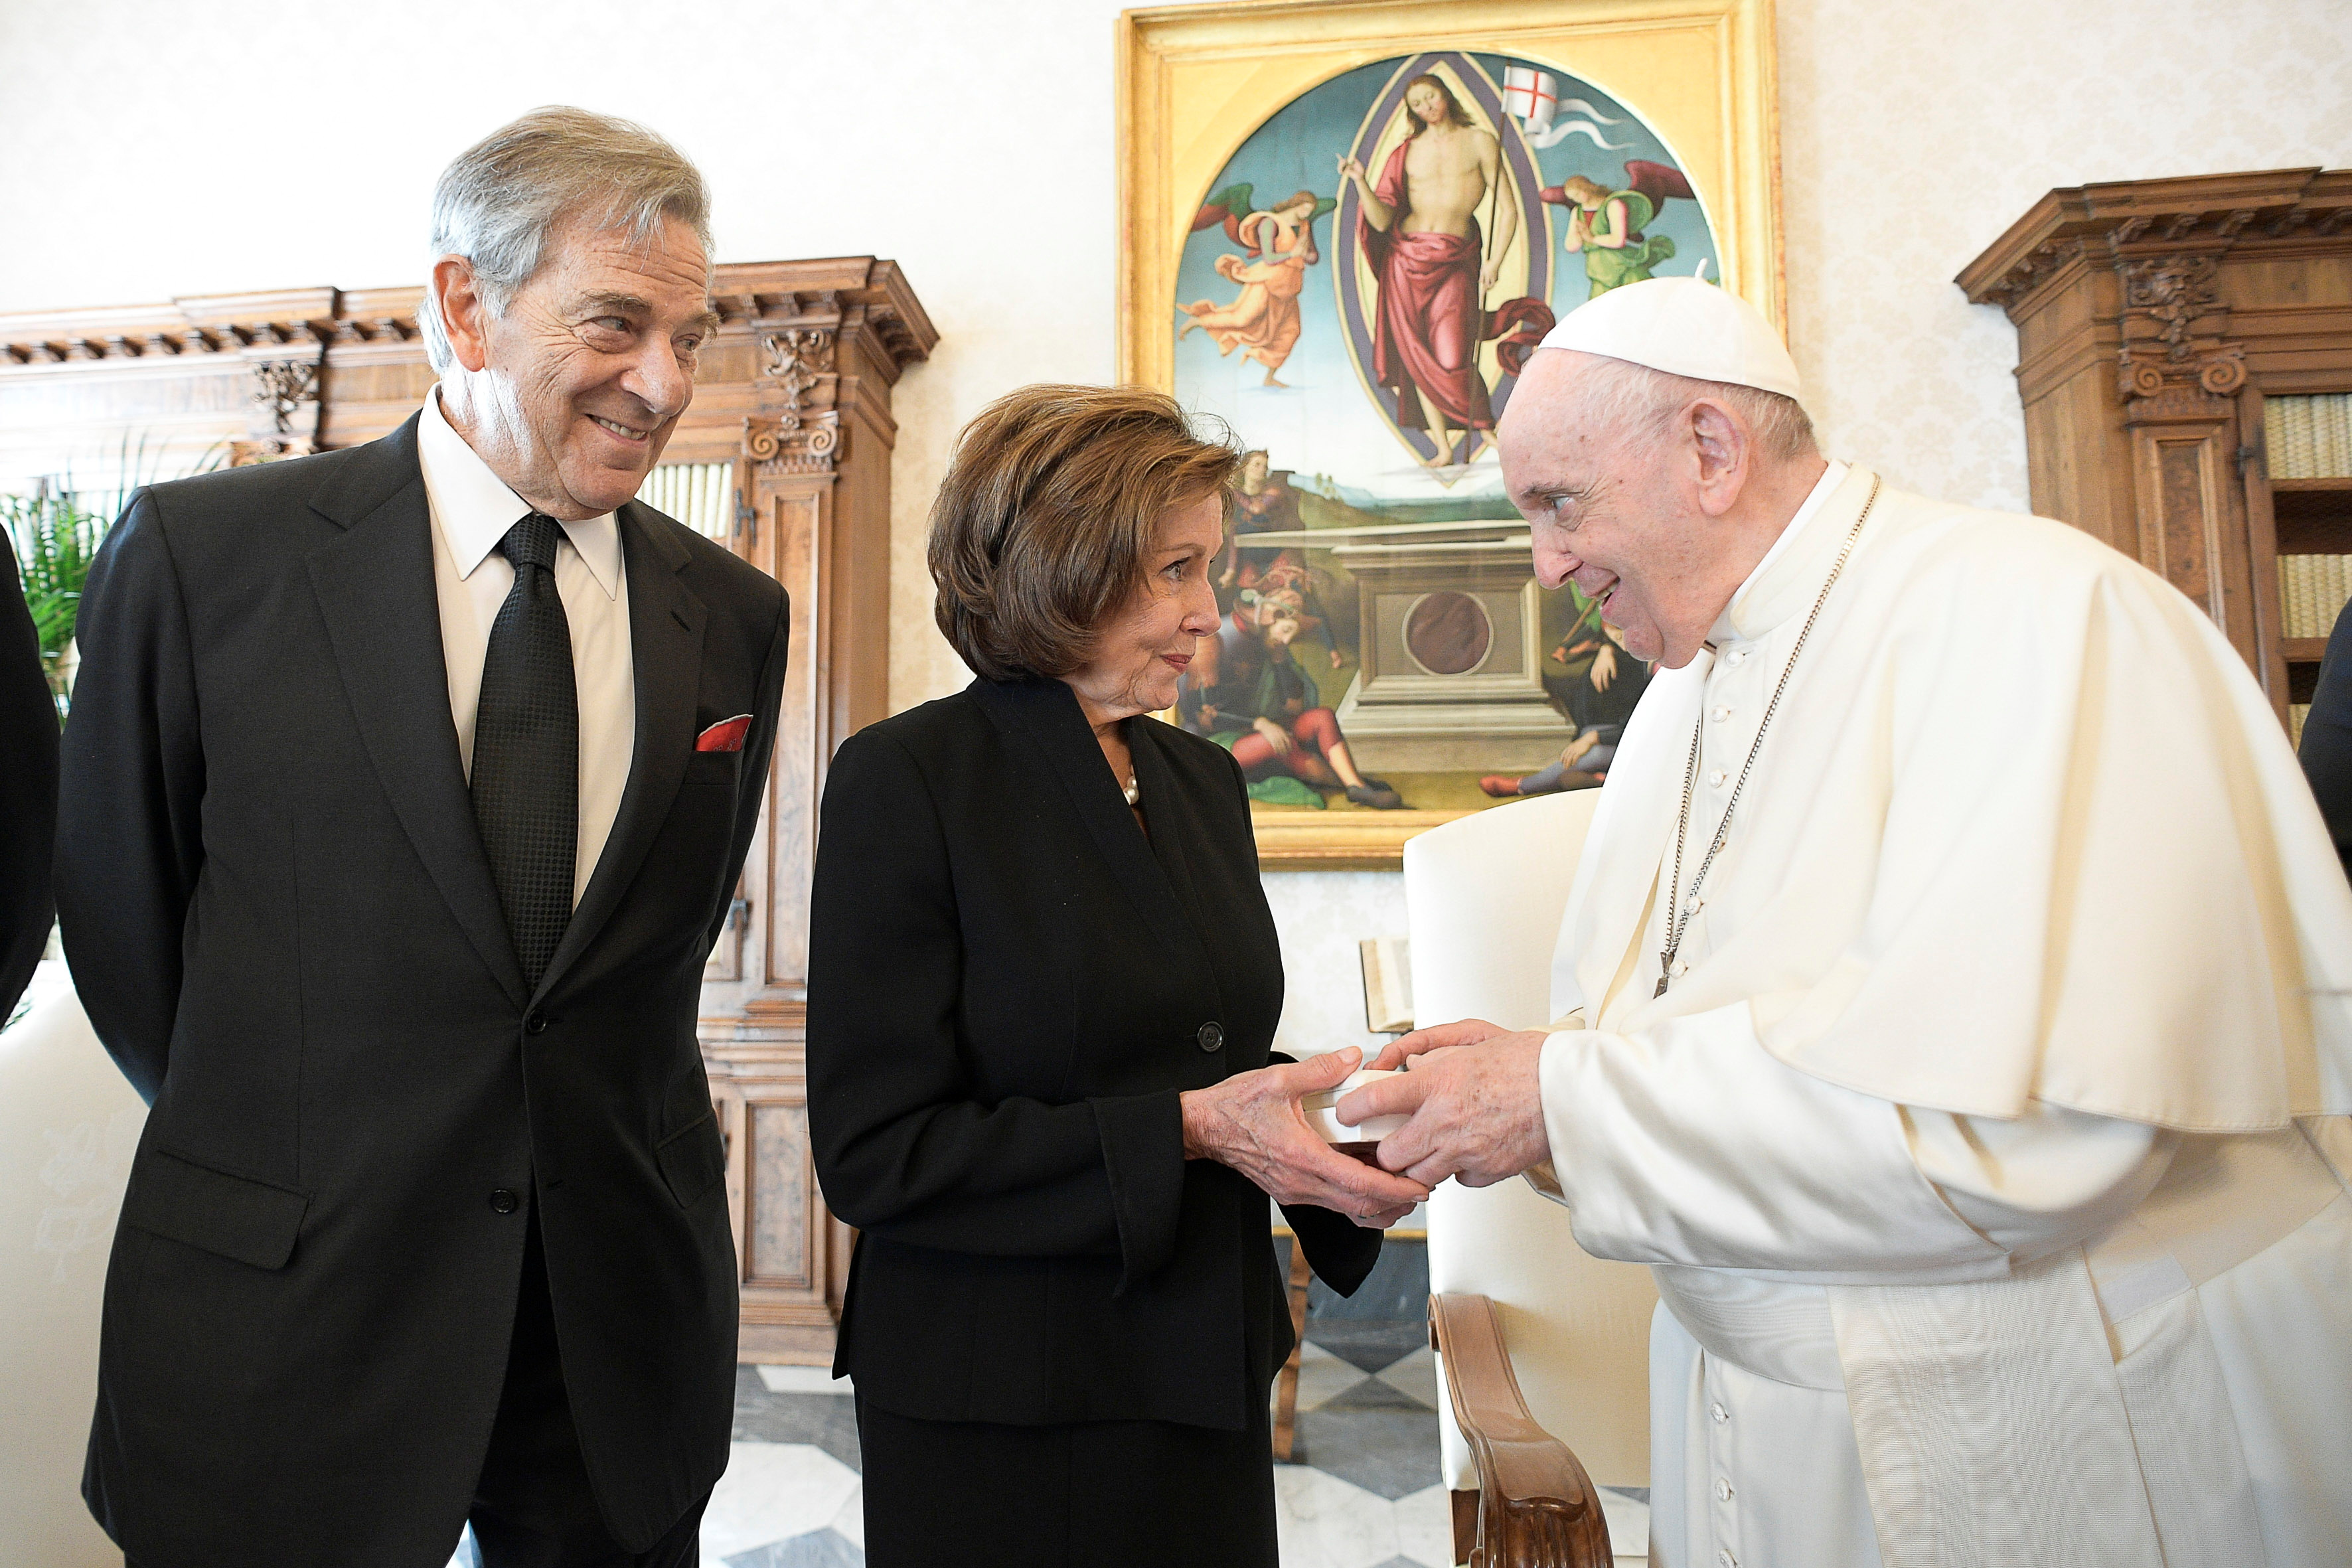 U.S. Speaker of the House Nancy Pelosi and her husband Paul Pelosi meet with Pope Francis at the Vatican, October 9, 2021.  Vatican Media/Handout via REUTERS